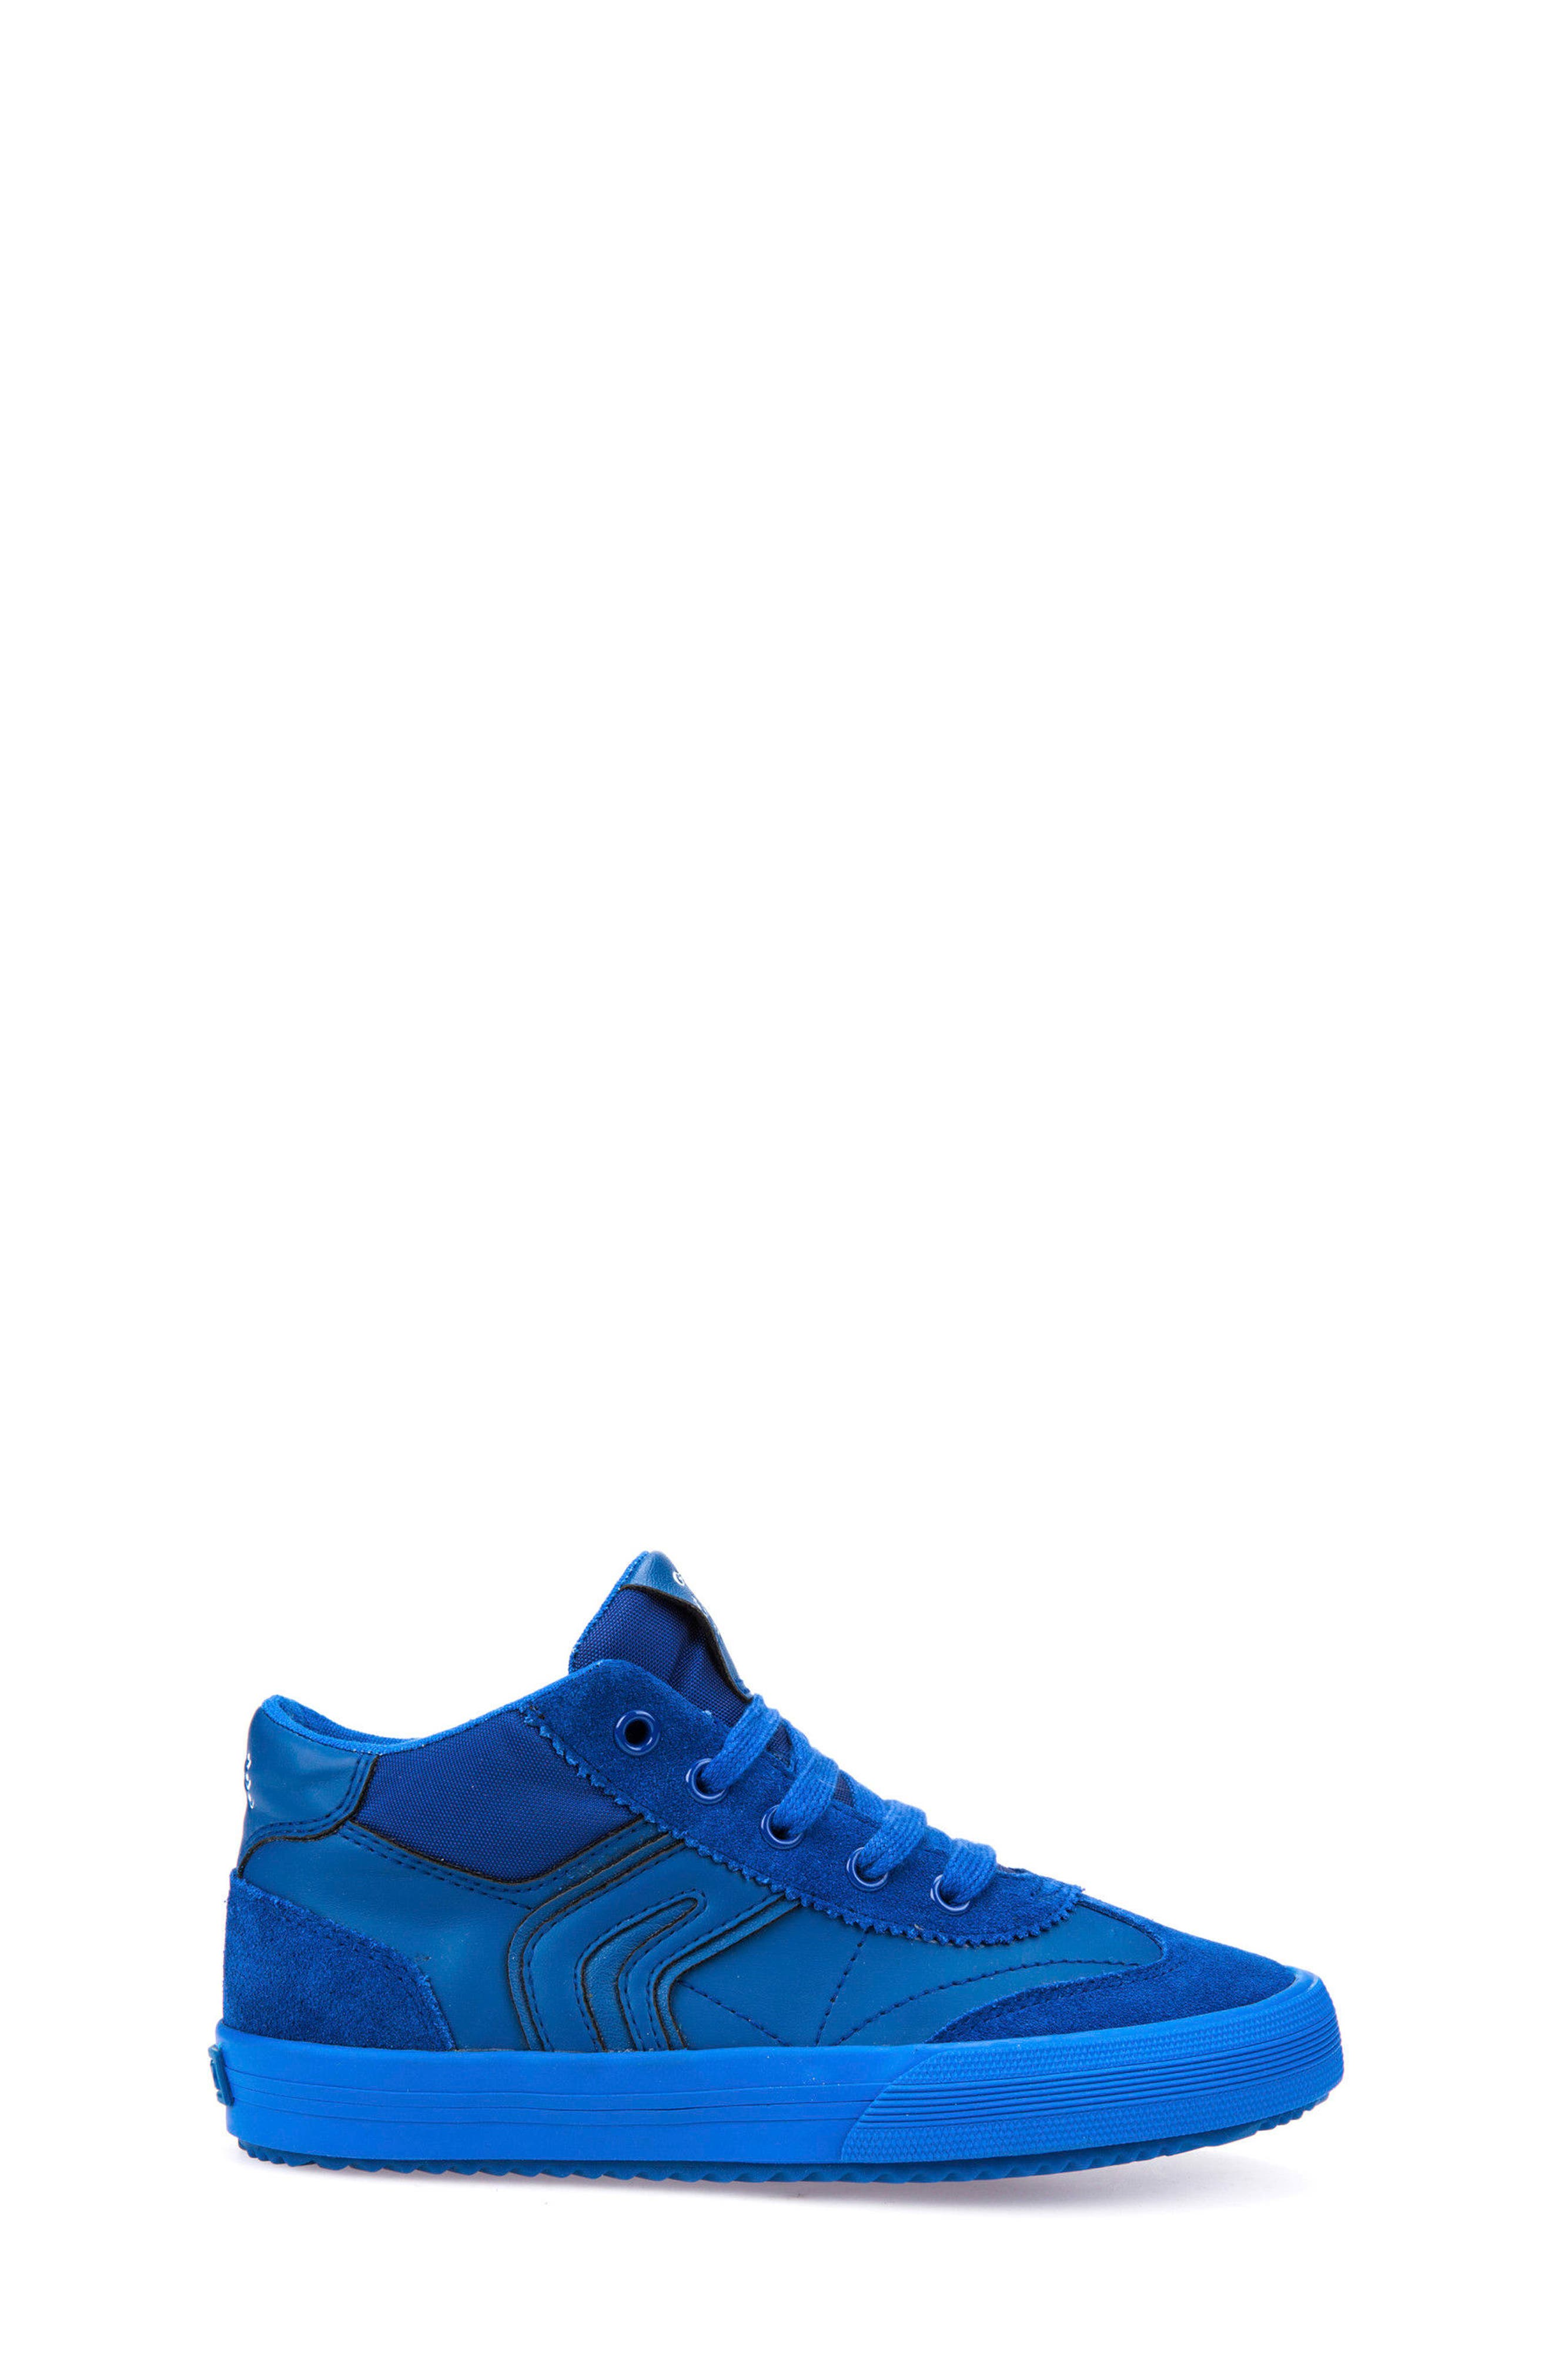 Alonisso Mid Top Sneaker,                             Alternate thumbnail 17, color,